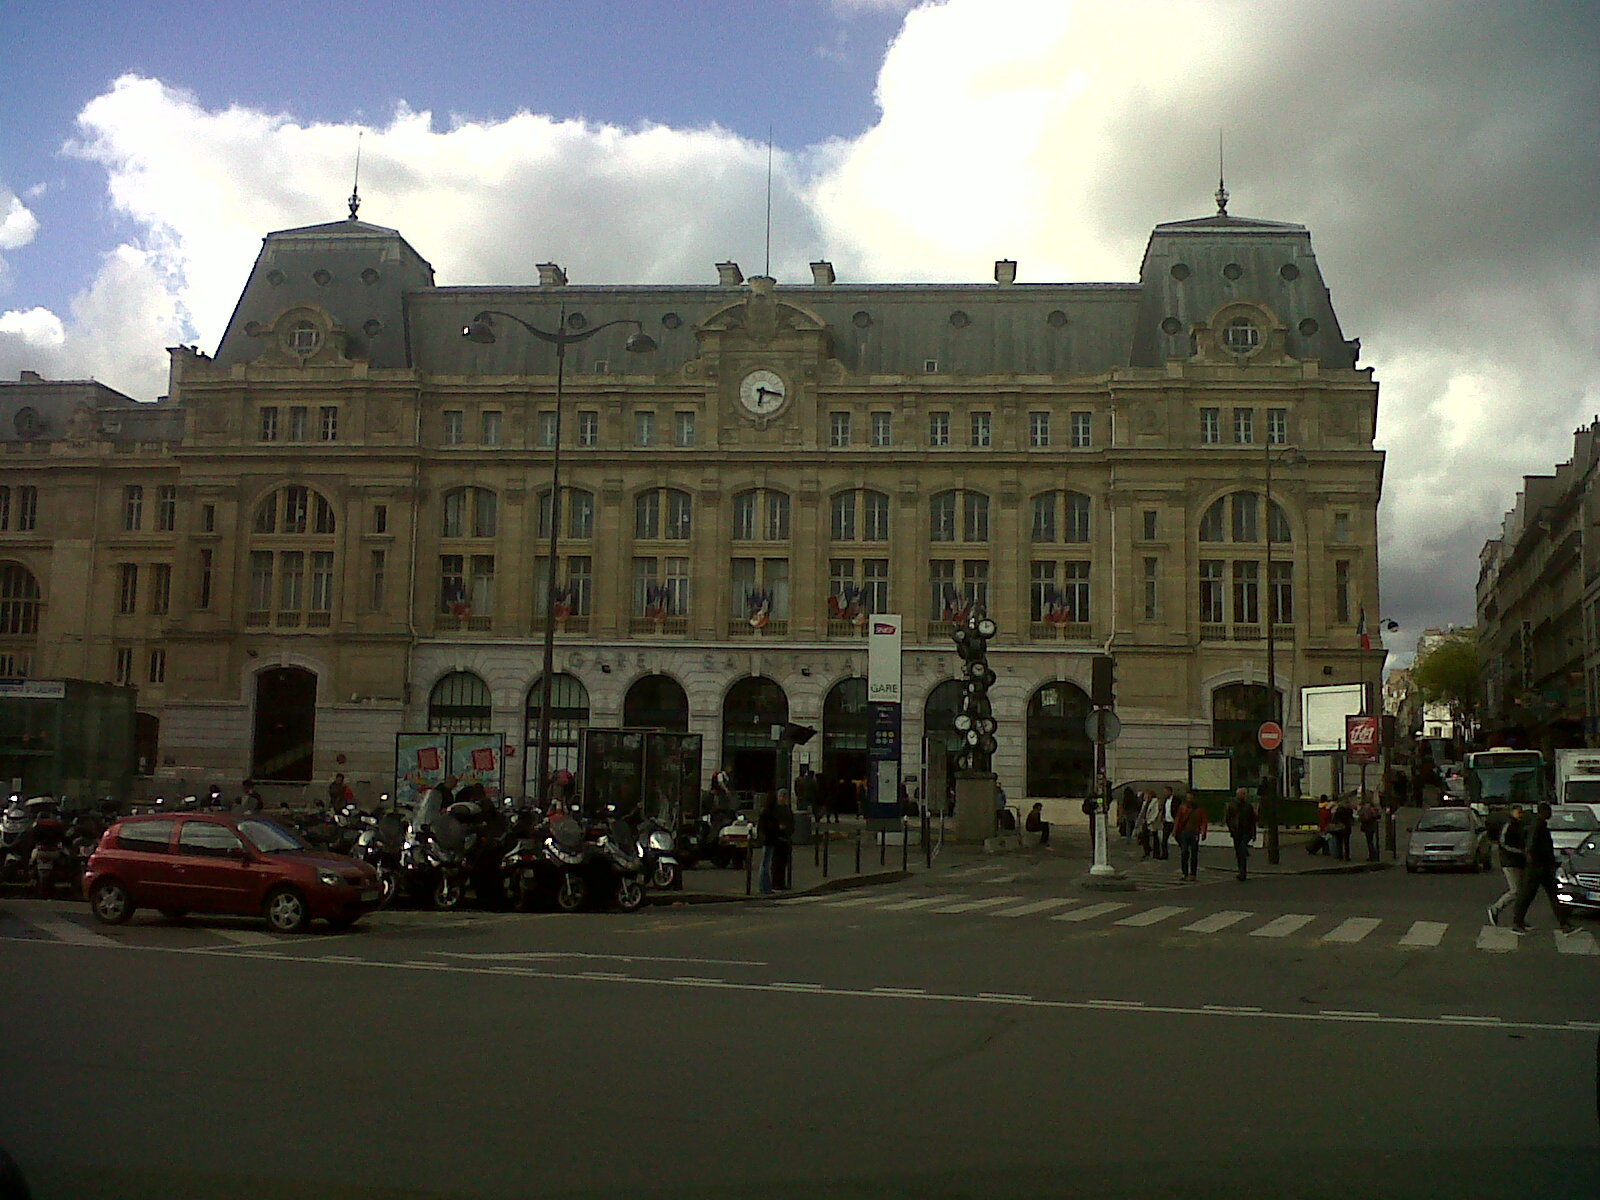 Paris gare saint lazare front 2 apr12